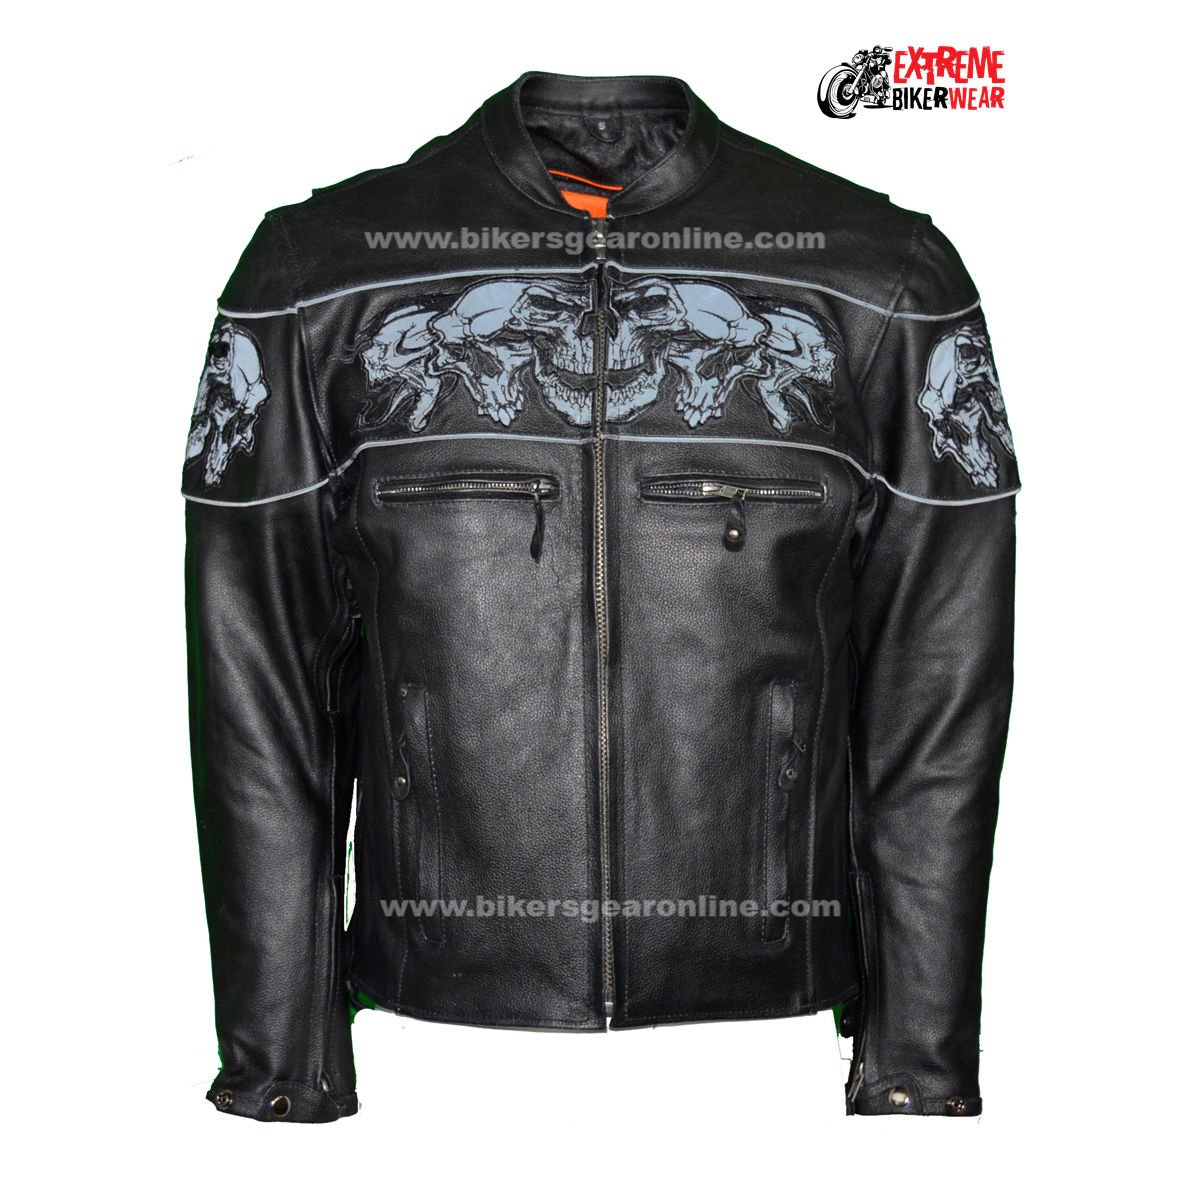 Dream Men's Motorcycle Riding Blk Reflective Skull Leather Jacket Big Sizes Upto 10xl (6XL Regular)